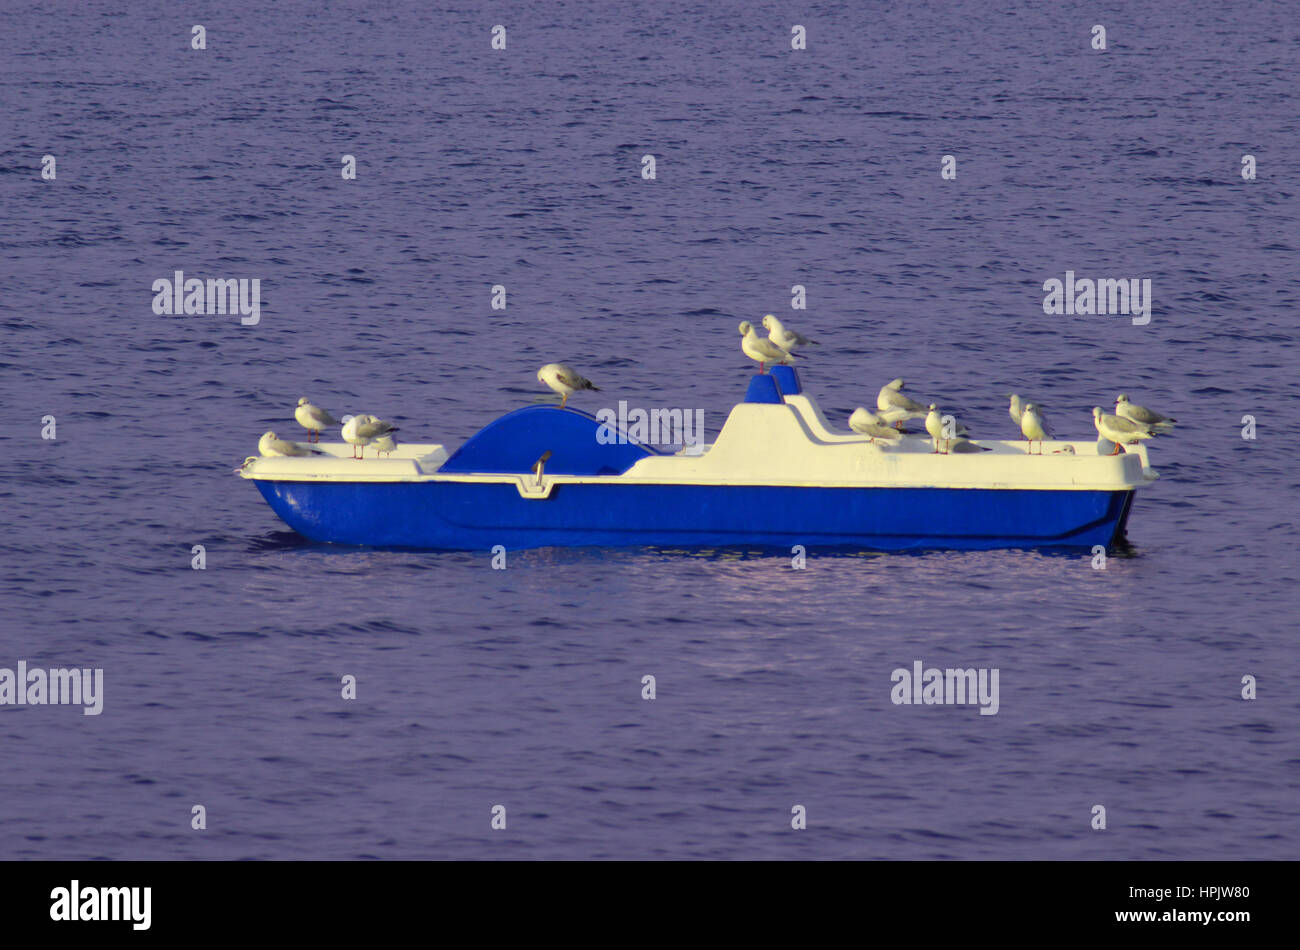 A pedalboat in the sea with seaguls resting on it - Stock Image